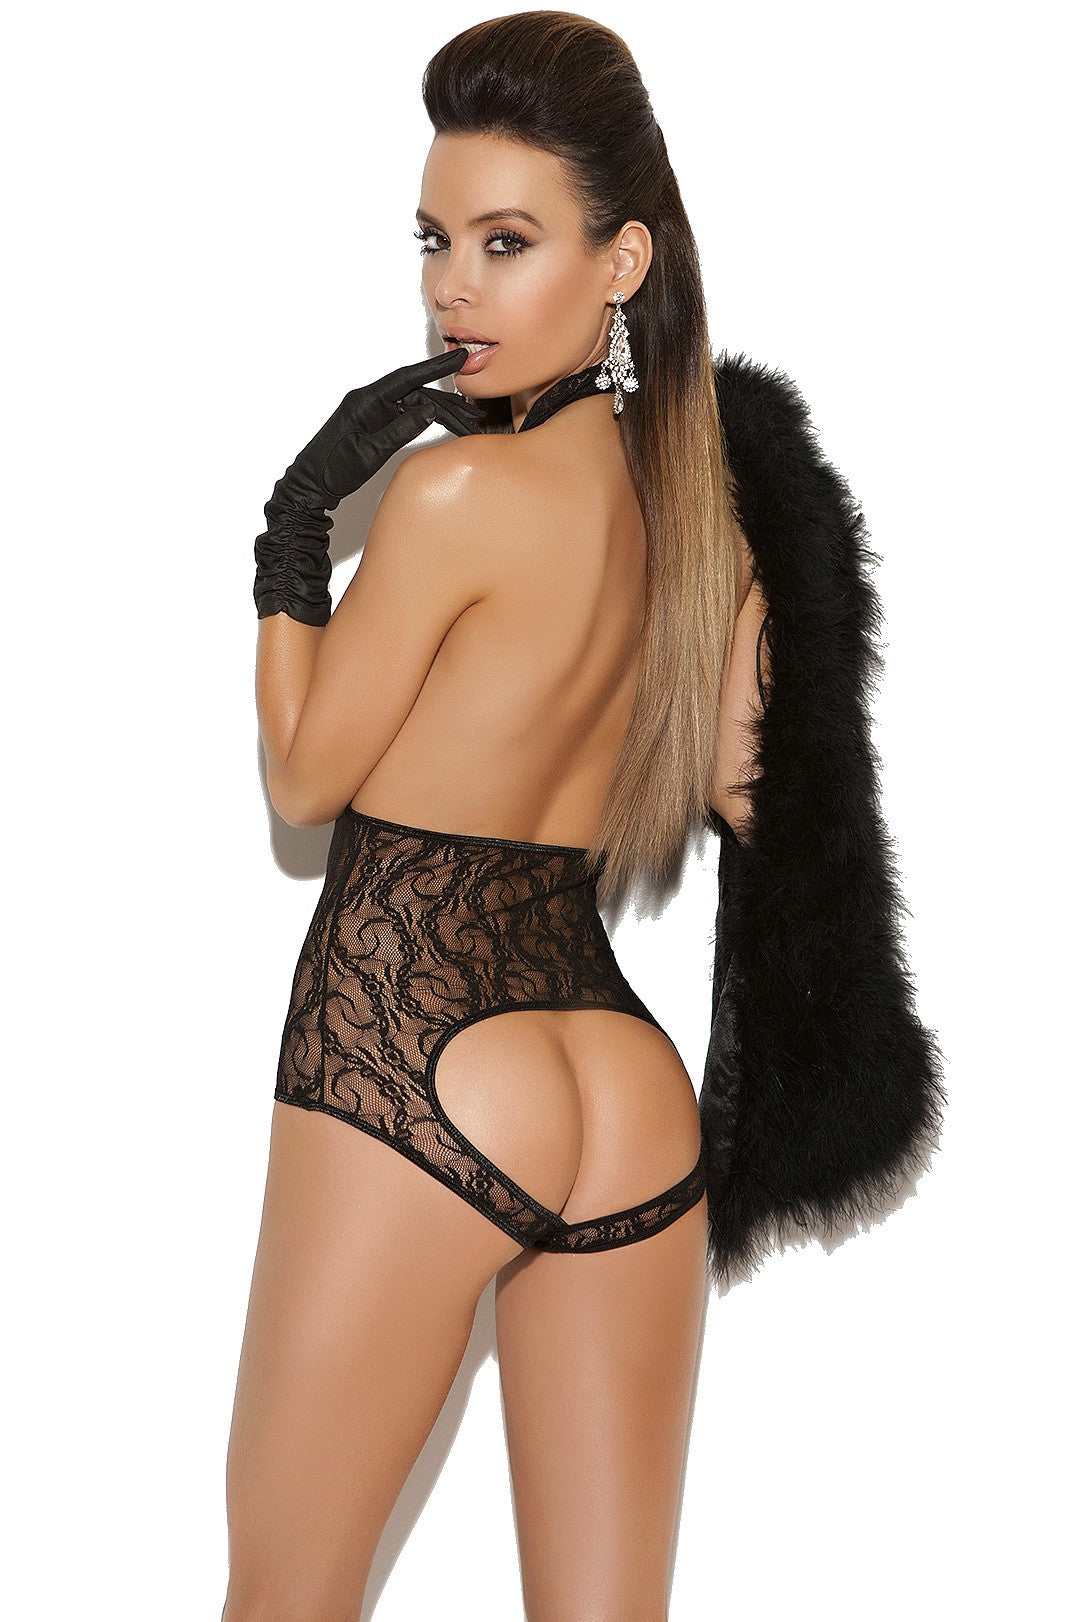 EM-8743 Teddy with open back - Sexylingerieland  - 2